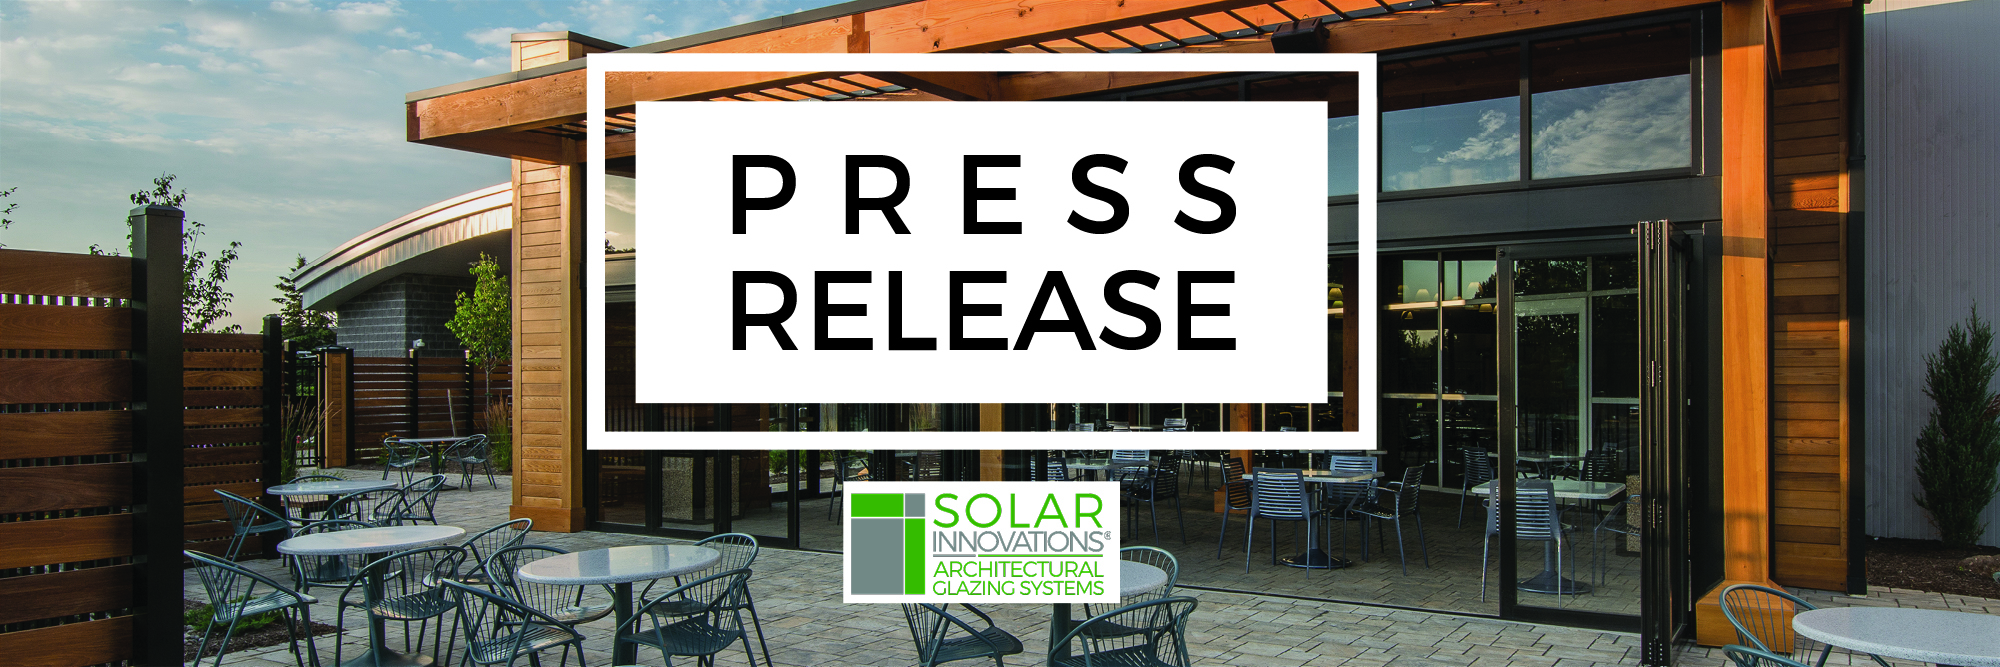 Solar Innovations Expands Patent Count With High Performance Fenestration System Solar Innovations